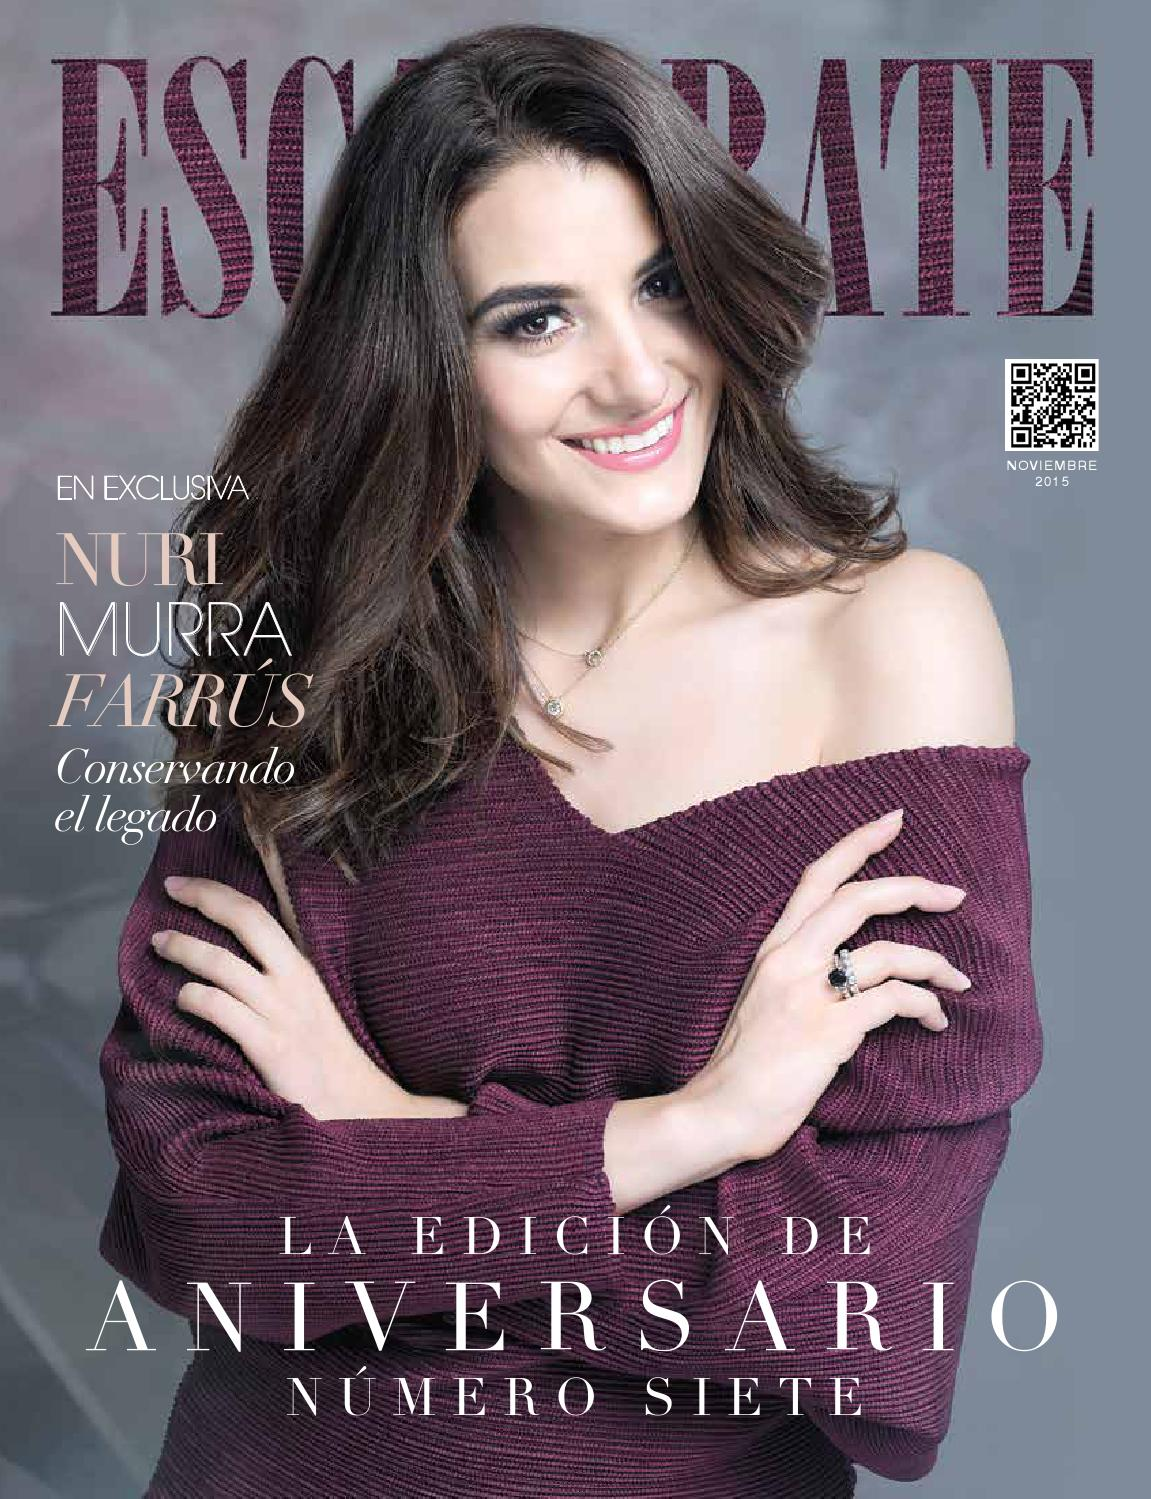 Escaparate Noviembre 2015 by Escaparate - issuu